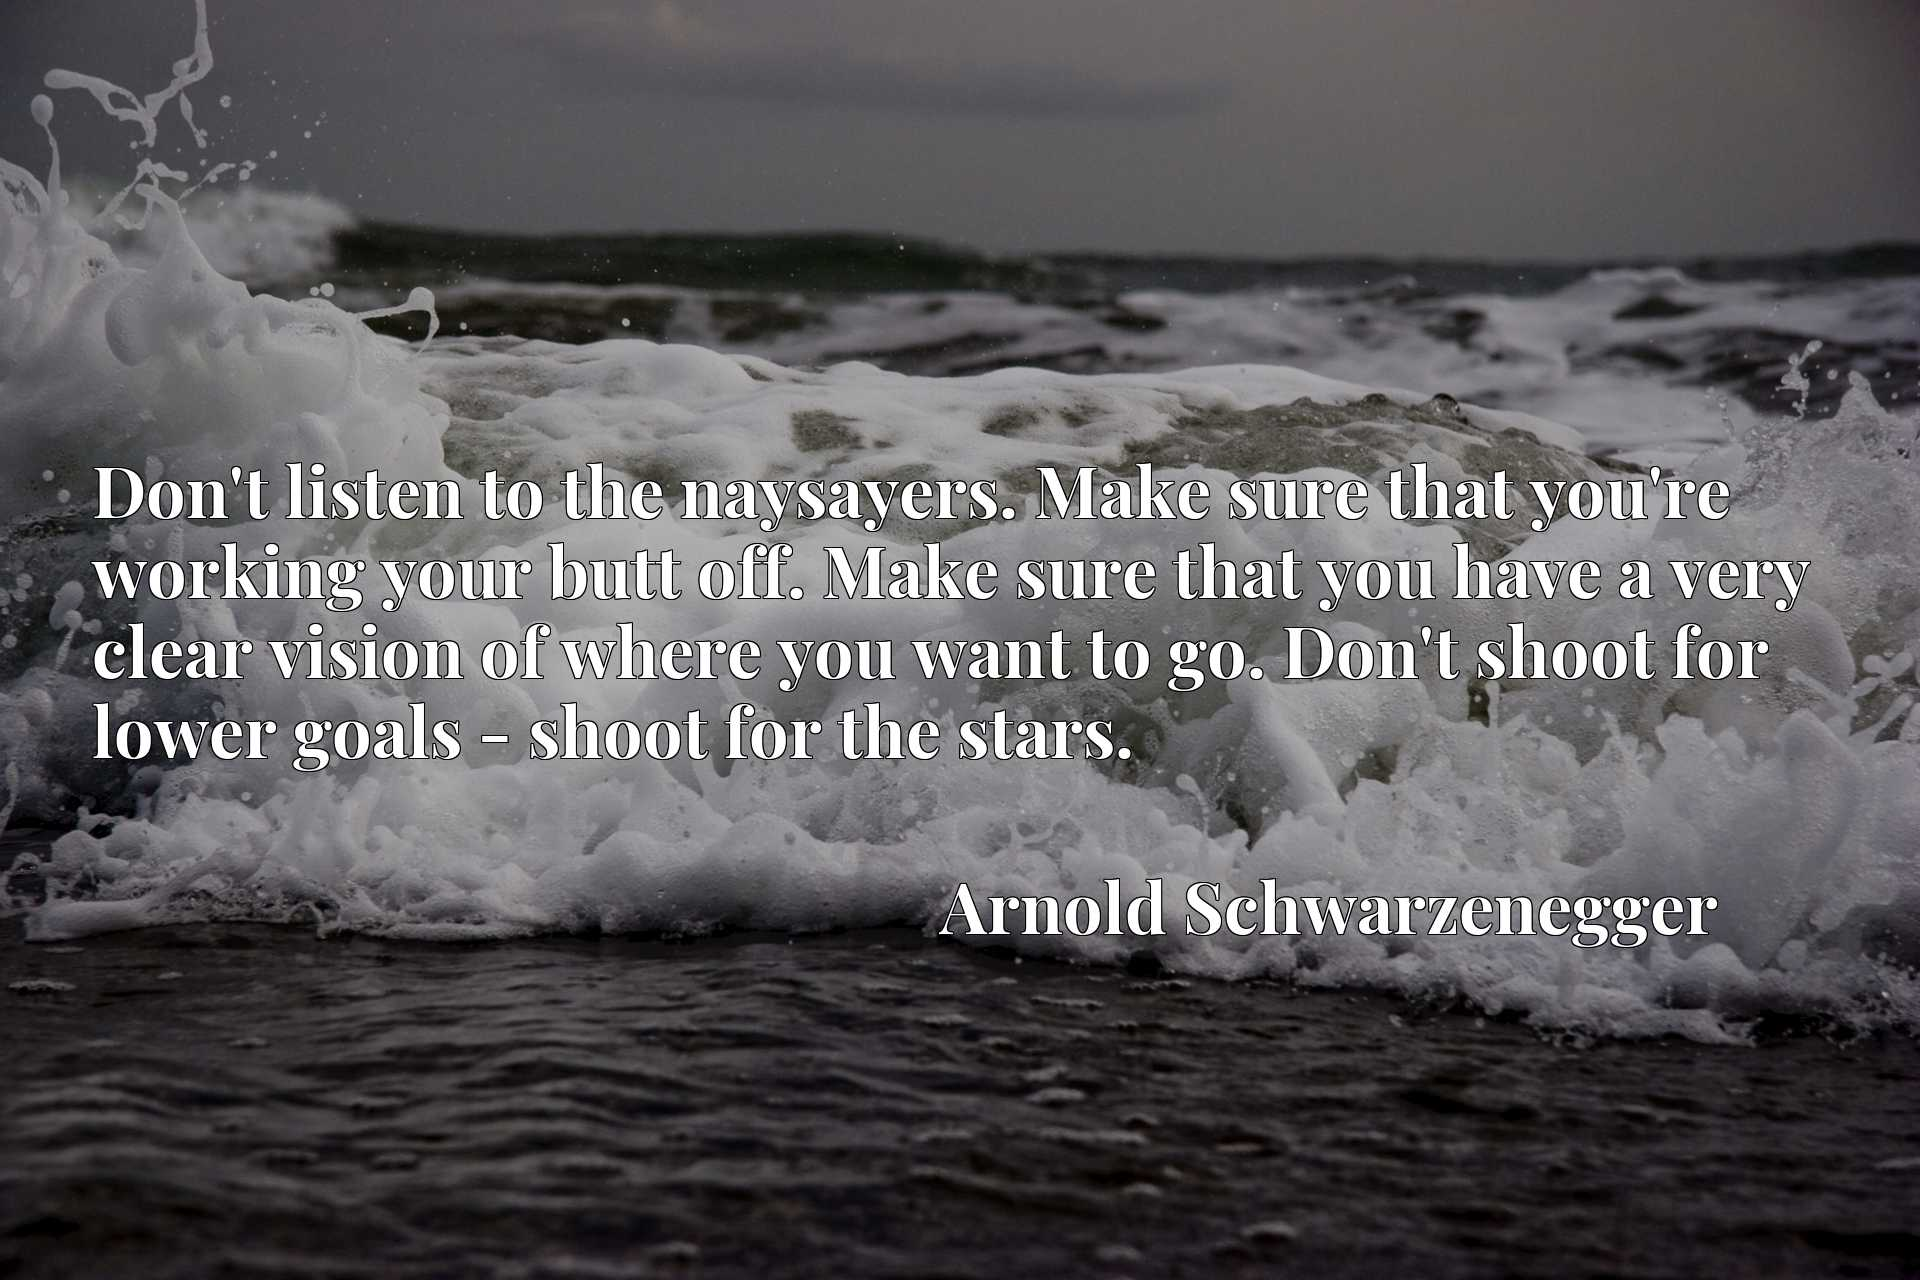 Don't listen to the naysayers. Make sure that you're working your butt off. Make sure that you have a very clear vision of where you want to go. Don't shoot for lower goals - shoot for the stars.